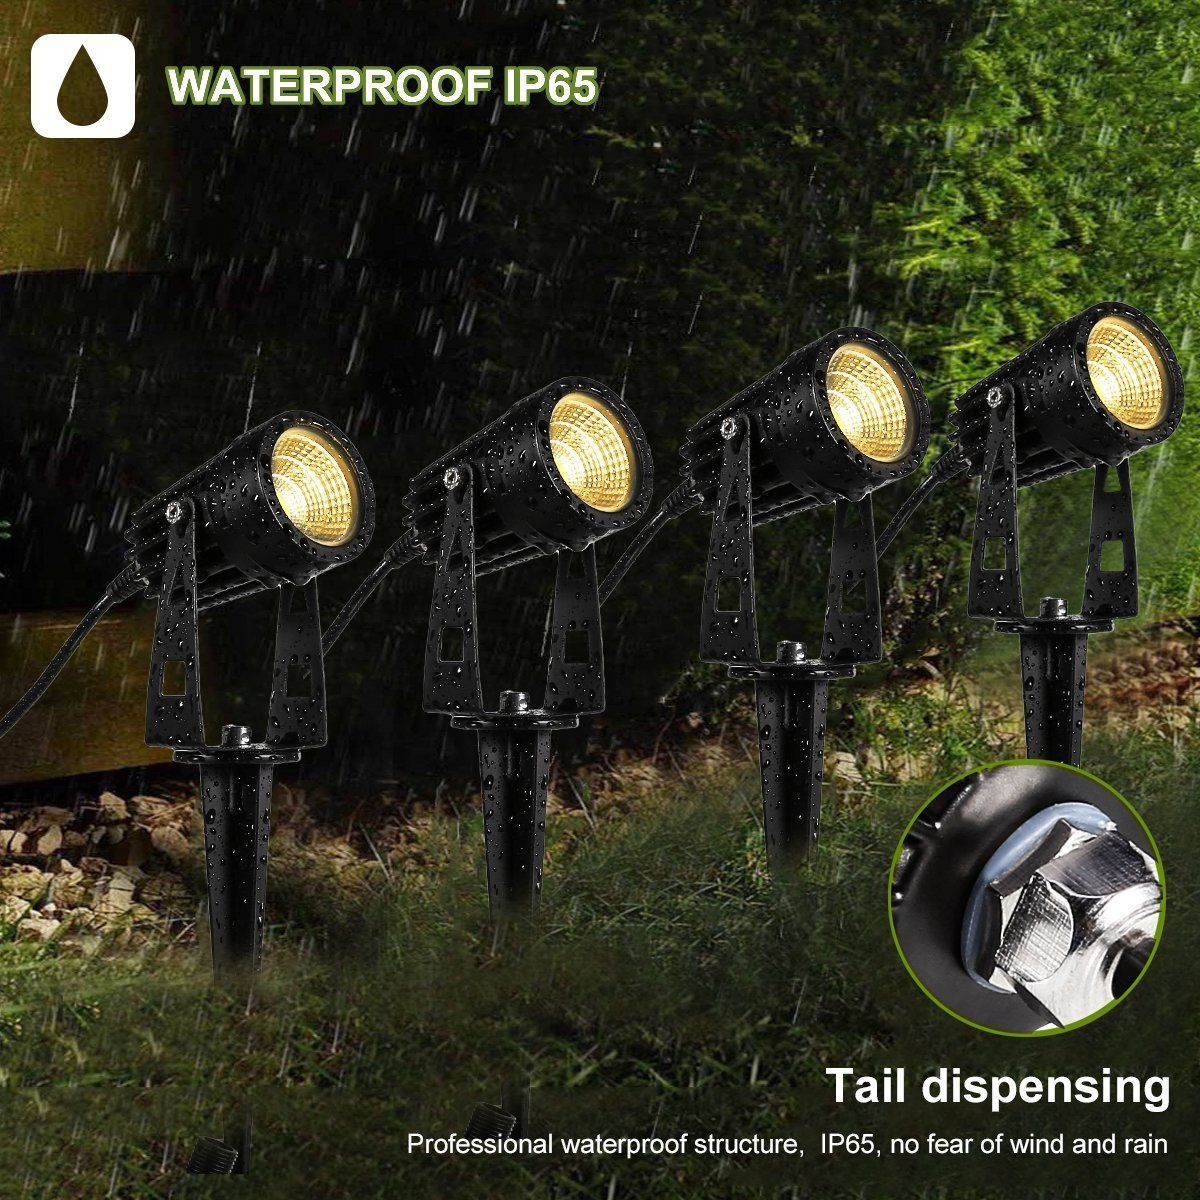 4packs Outdoor Led Landscape Lights Progreen 12v 1080lumen Waterproof Garden Path Lights 3000k Warm White Decorative Lamp Wall Light W Spiked Stand For Lawn Garden Path Lighting Led Landscape Lighting Landscape